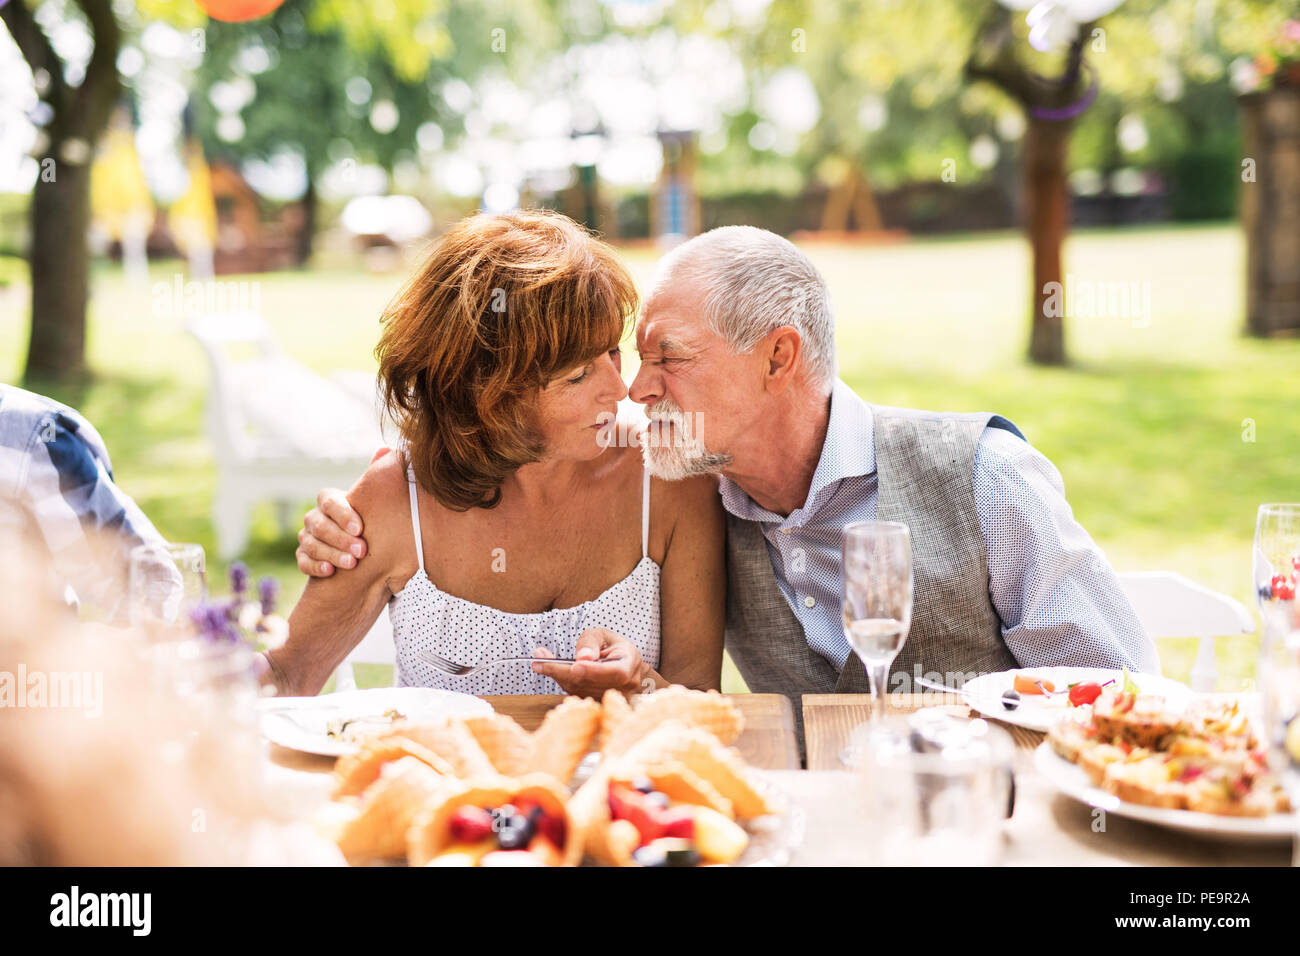 Senior couple sitting at the table on a garden party, touching noses. - Stock Image